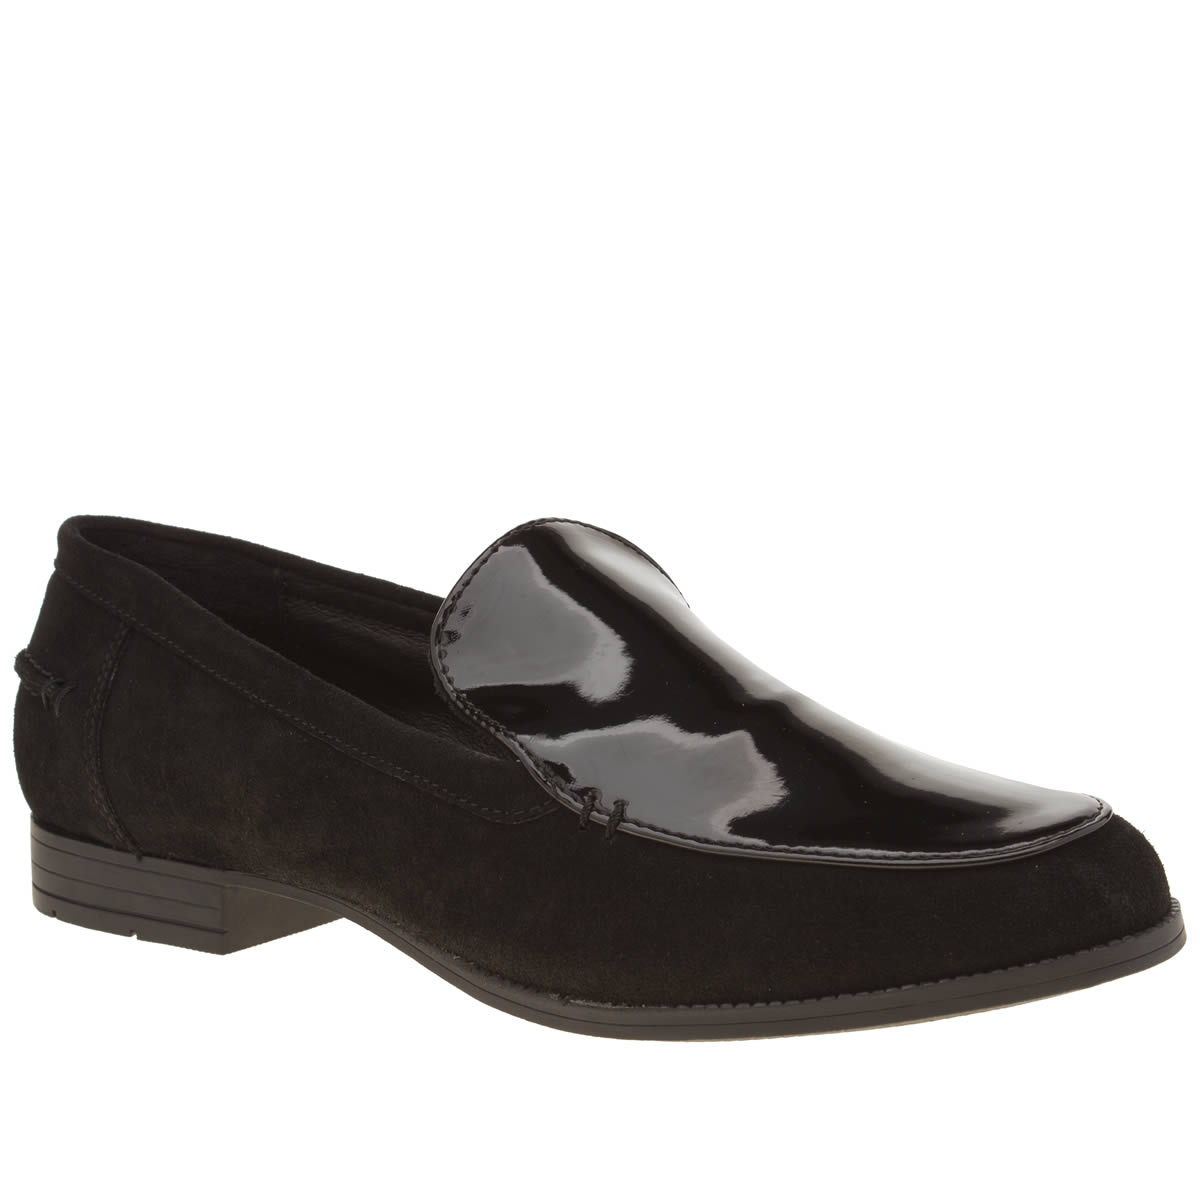 Hush Puppies Hush Puppies Black Redcliffe Flats